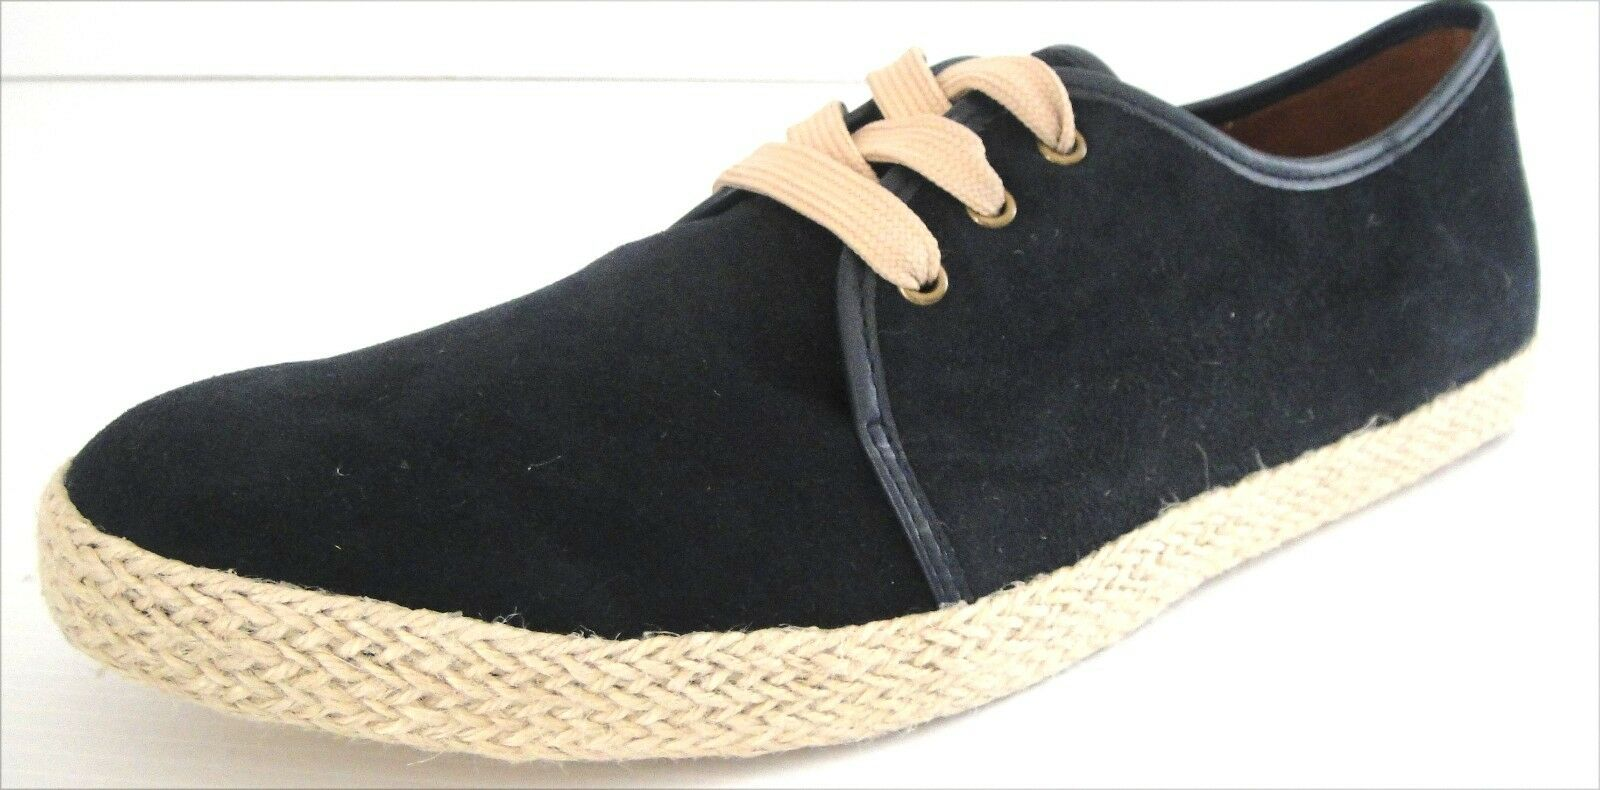 New Scott James  theo men's suede US schuhe  Größe  US suede 10.5 EUR 45 d508ae